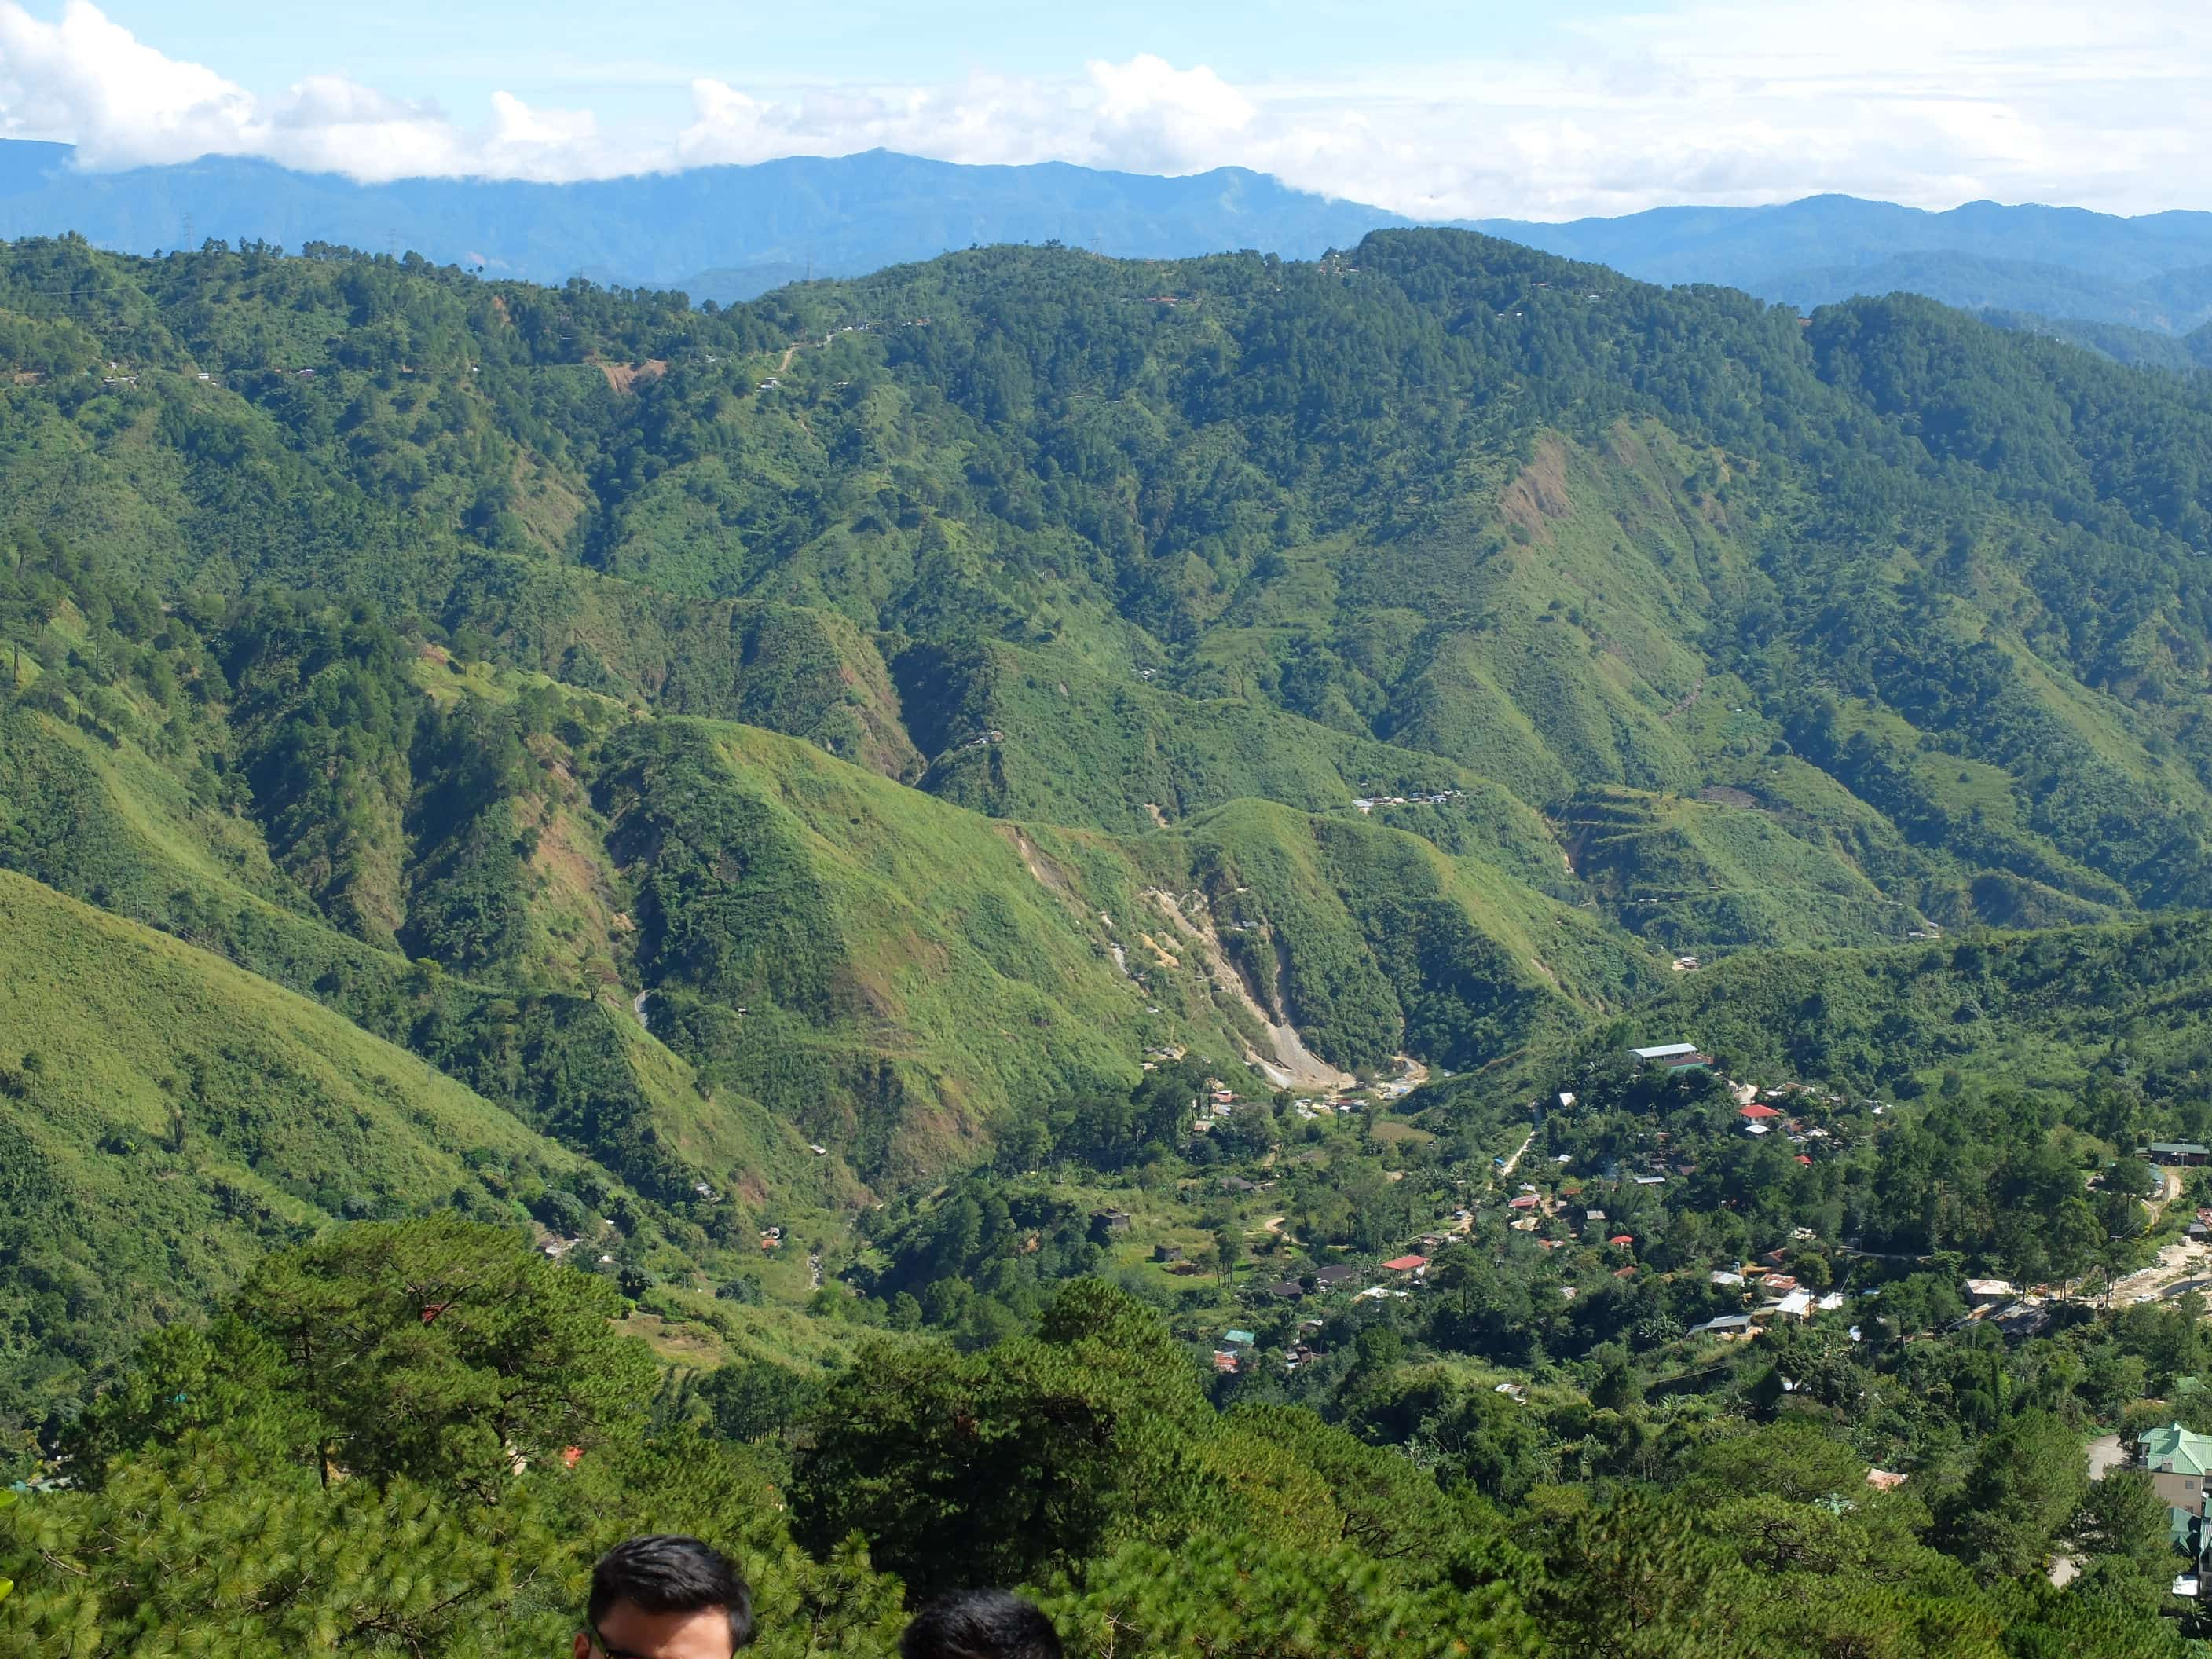 Baguio, tourist spots in the Philippines